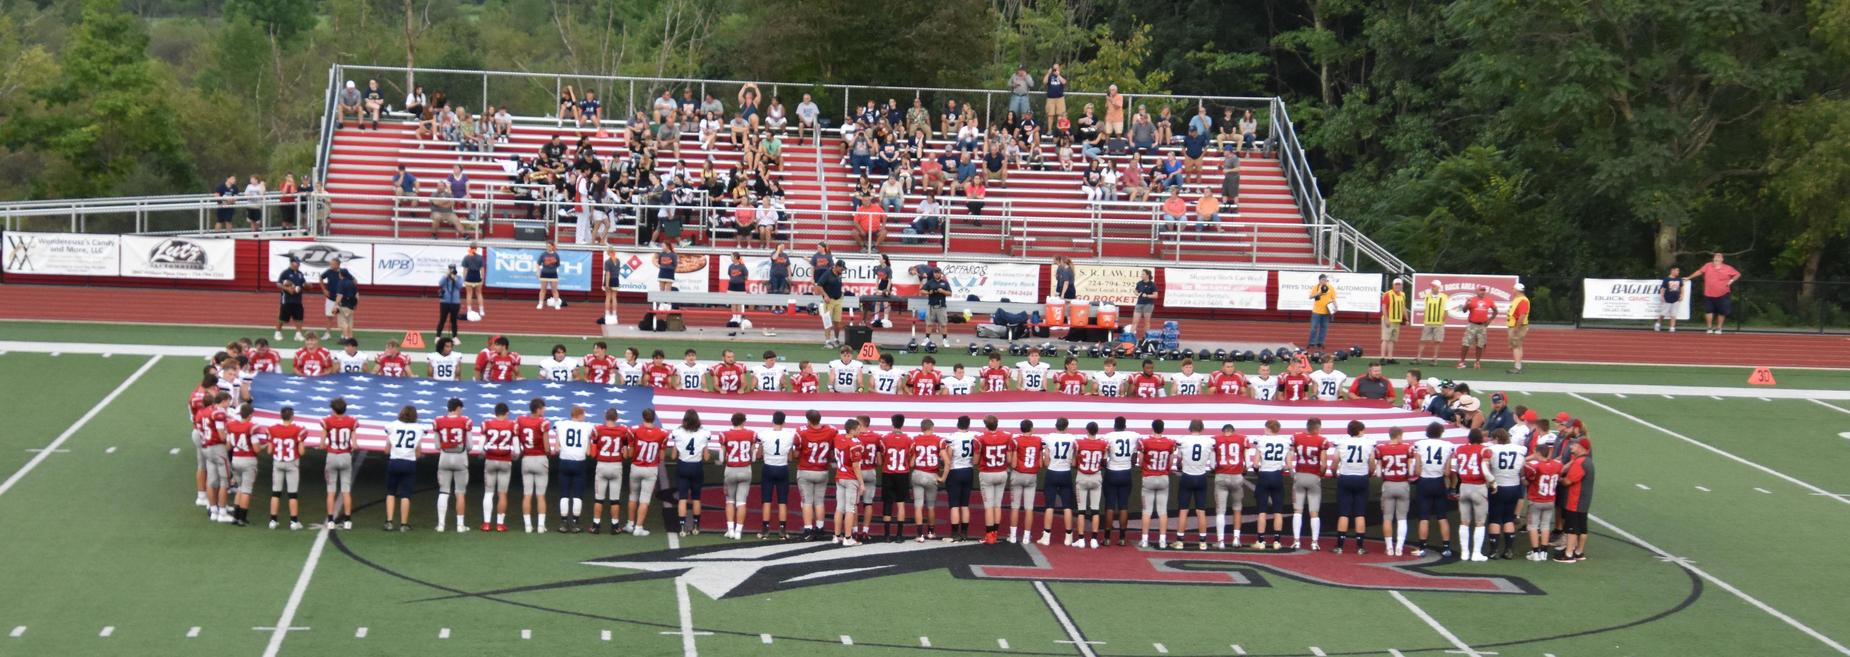 Game 1 - August 27, 2021 - Against Central Clarion